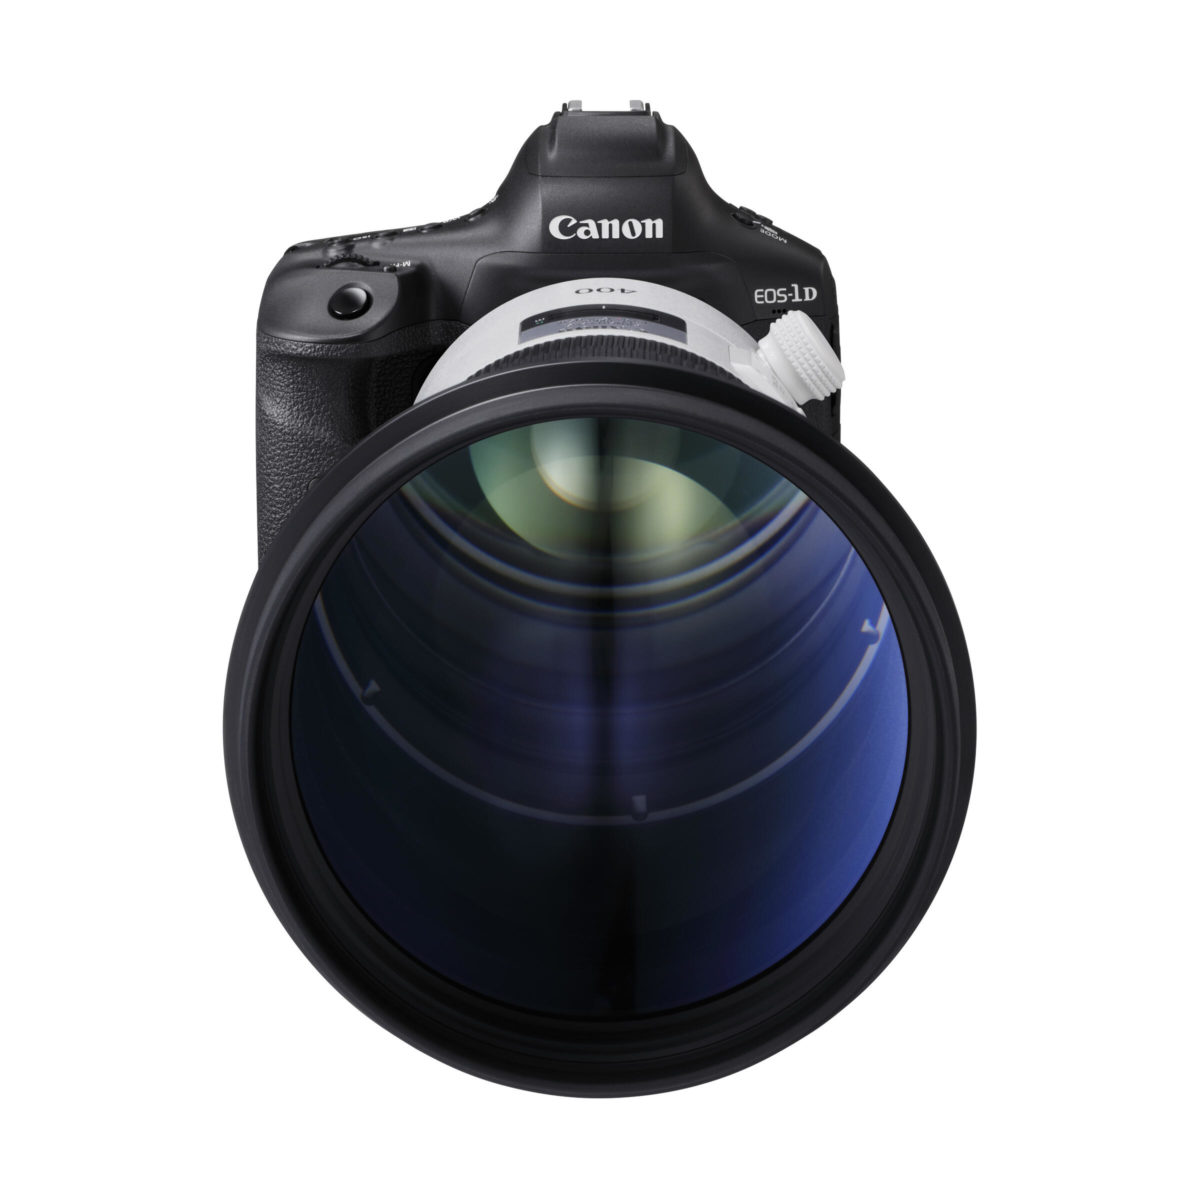 canon_eos_1d_x_mark_iii_body_07